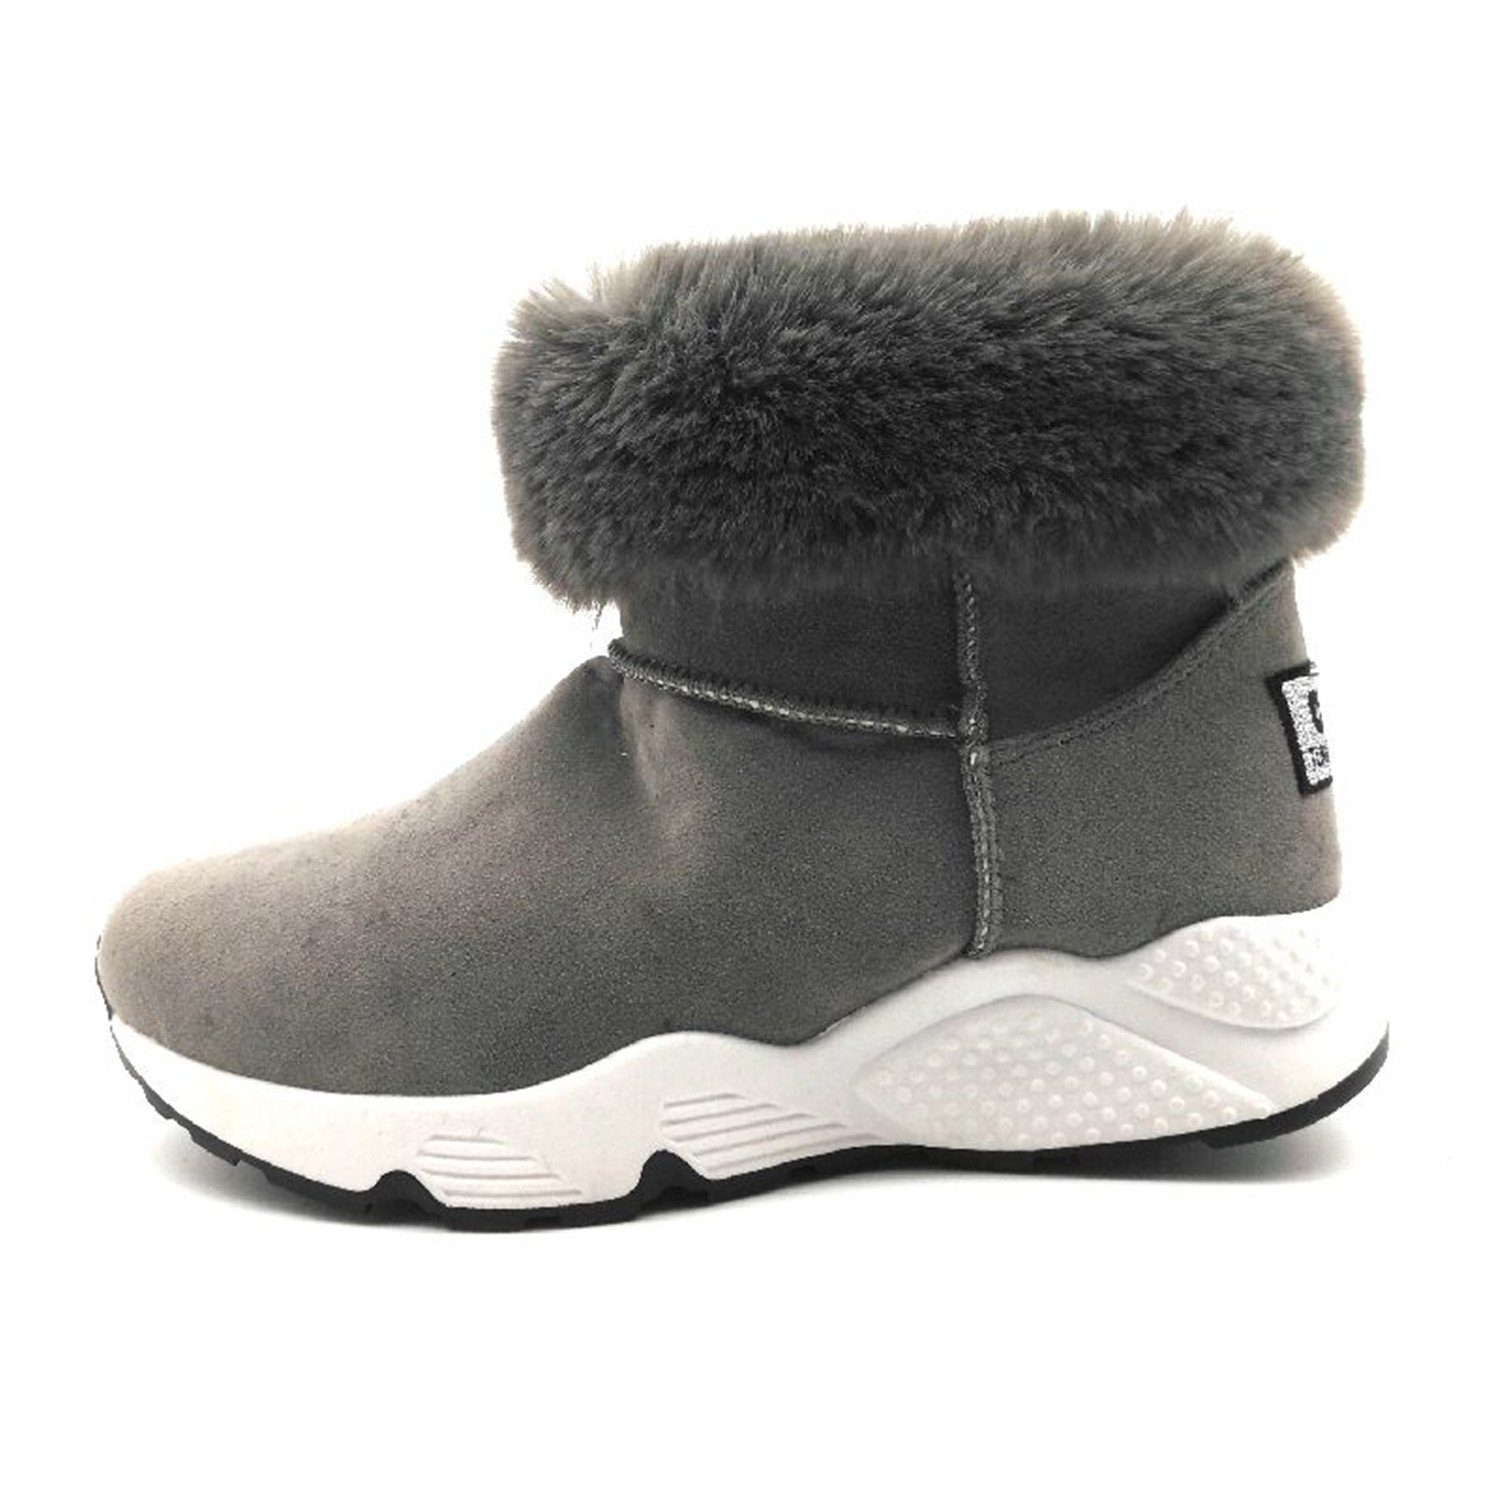 Amazon.com | Winter Women Snow Boots Flat Round-Toe Ankle Boots Warm Plush Boots Slip-On Women Shoes Black Gray Dark Grey 8.5 | Boots